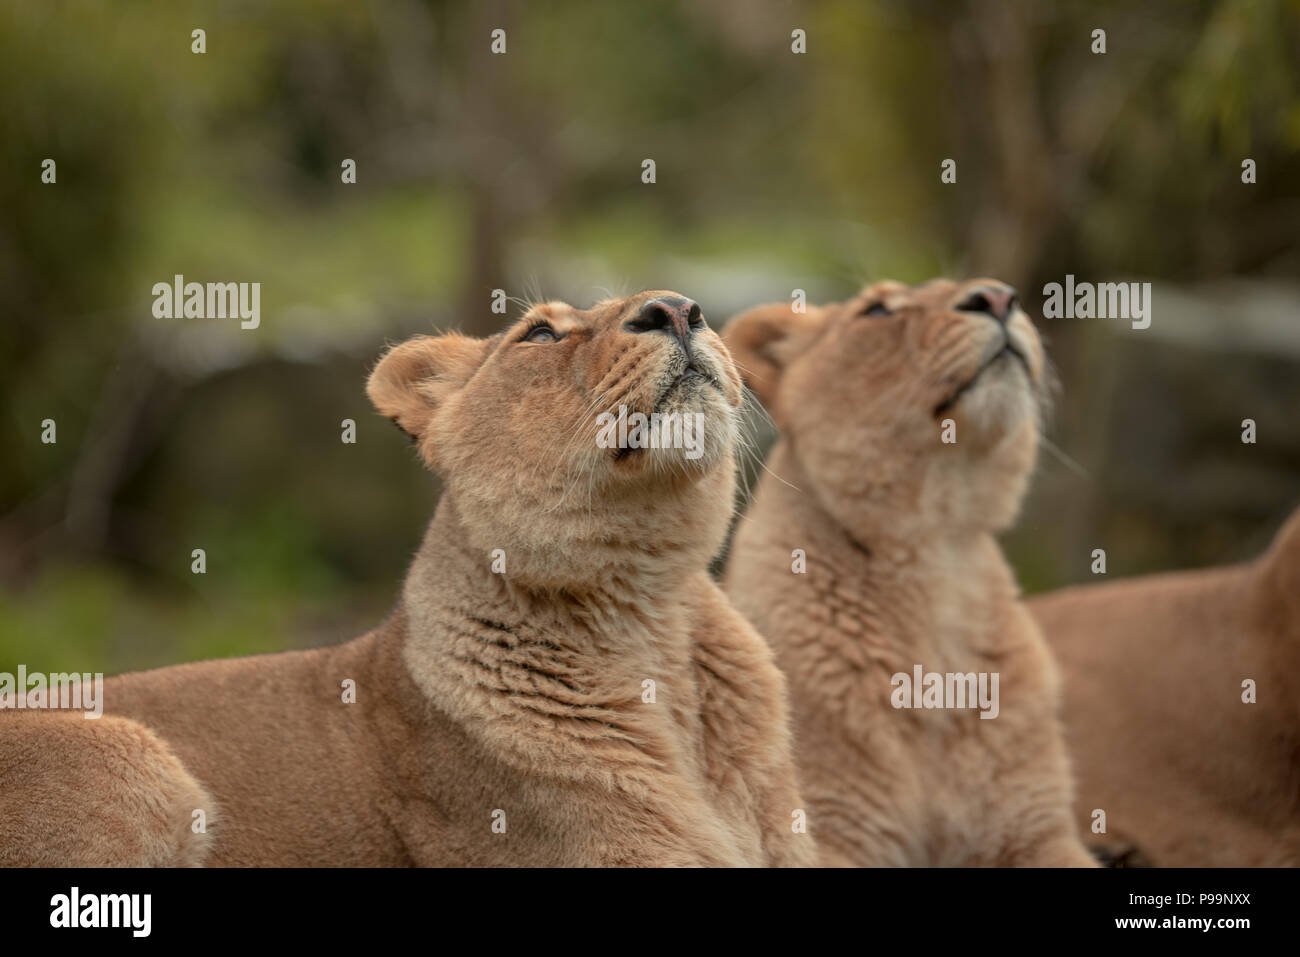 Lions looking up focused on prey - Stock Image